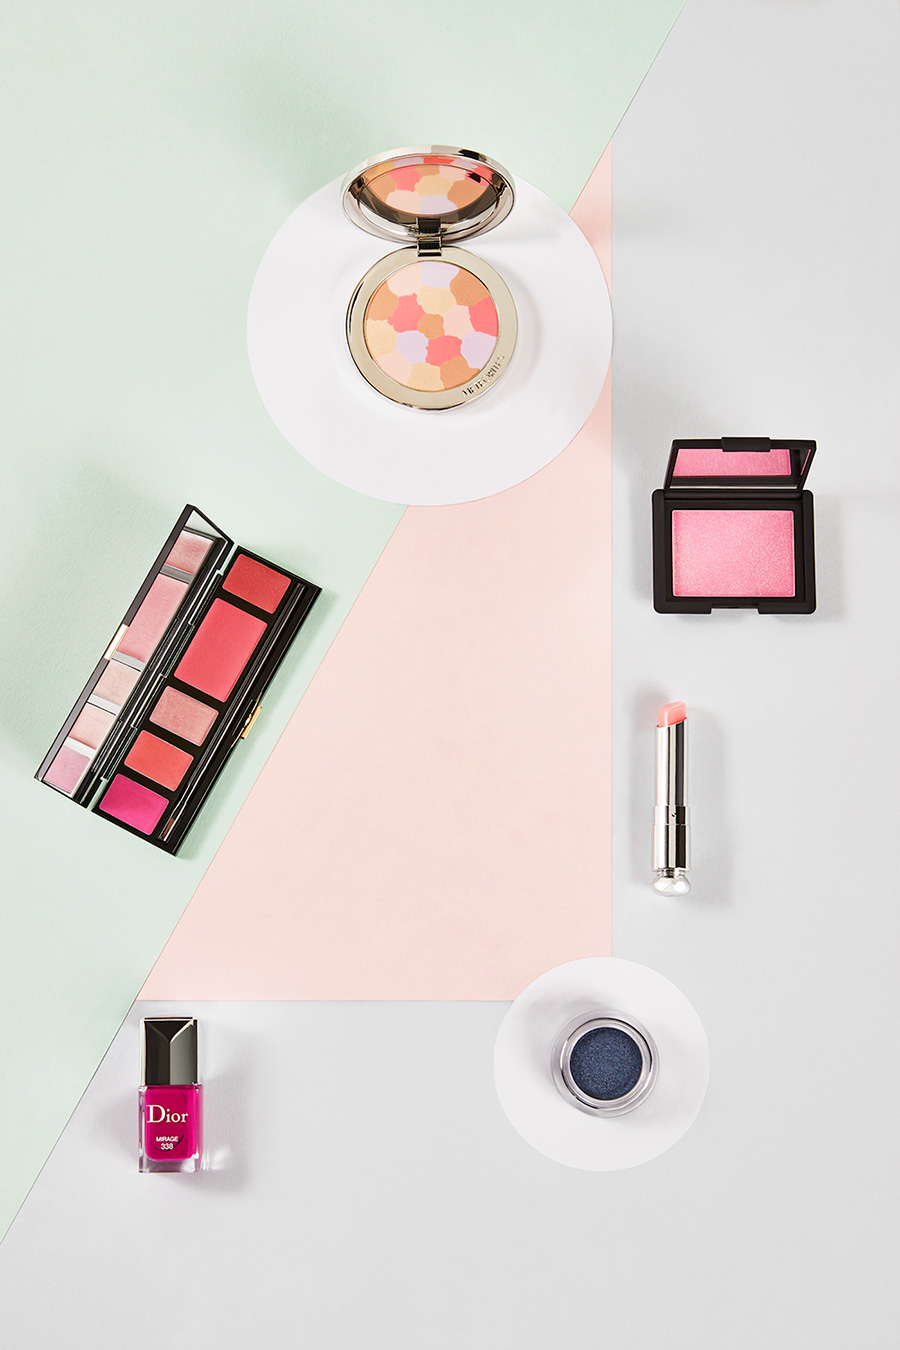 Namshi Launches Beauty – and the Brands on the Roster Are Pretty Major